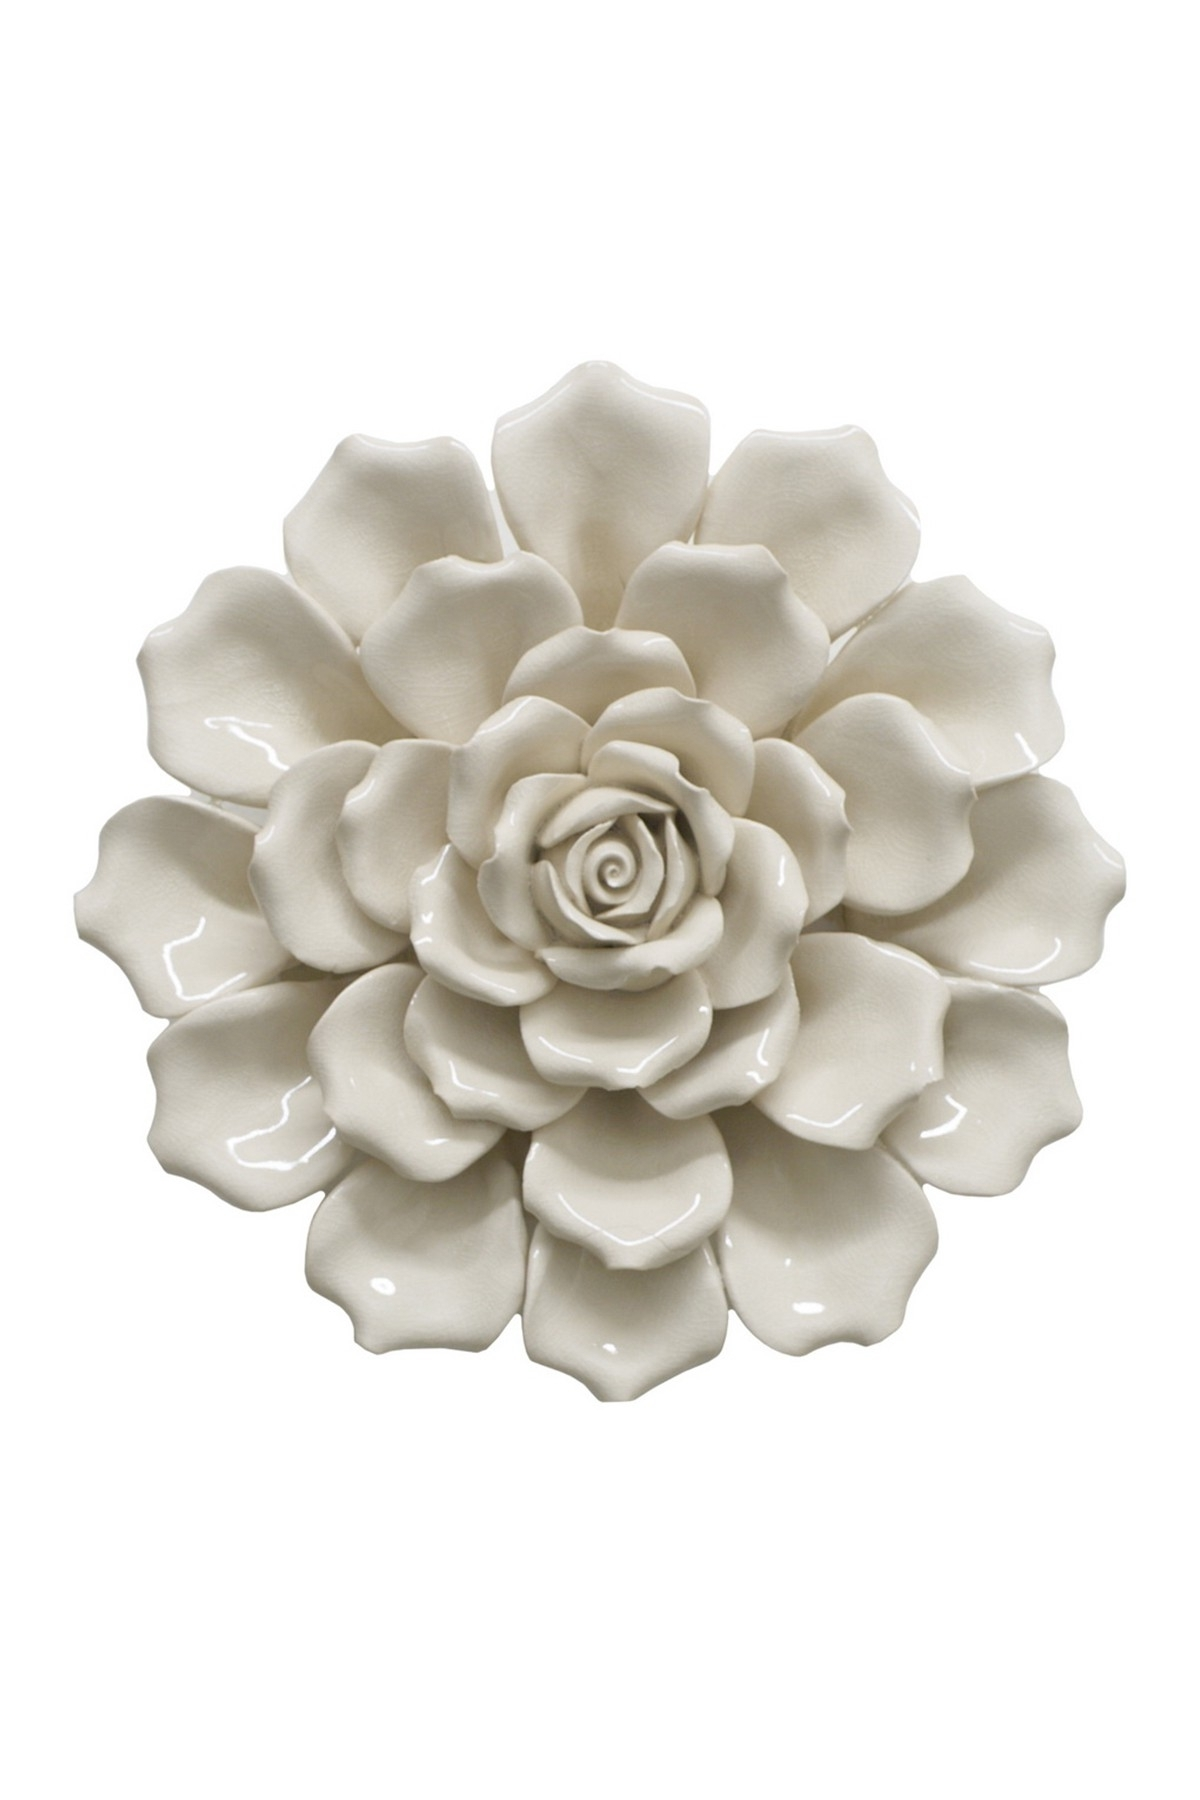 Fashionable Crafty Inspiration Ceramic Flower Wall Decor White Threshold Within Ceramic Flower Wall Art (View 7 of 15)